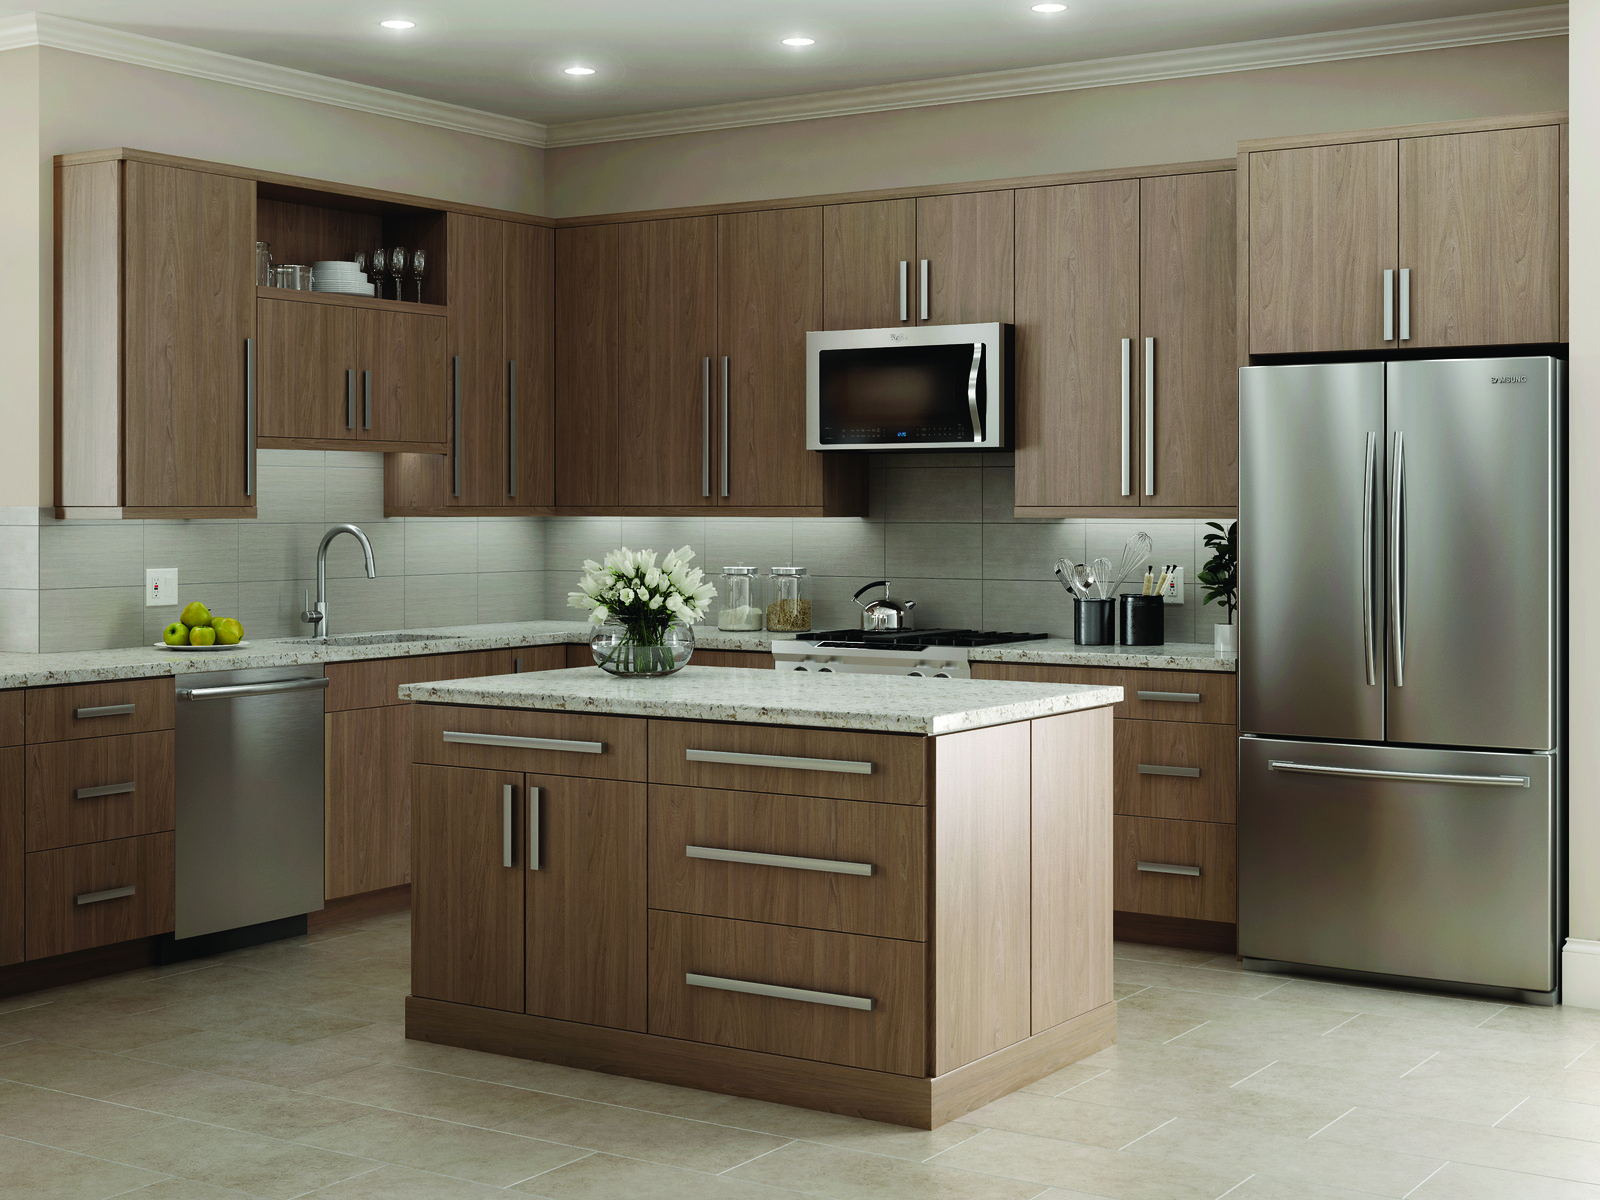 PROSPECT  WOLF TRANSITION  BJ Floors and Kitchens